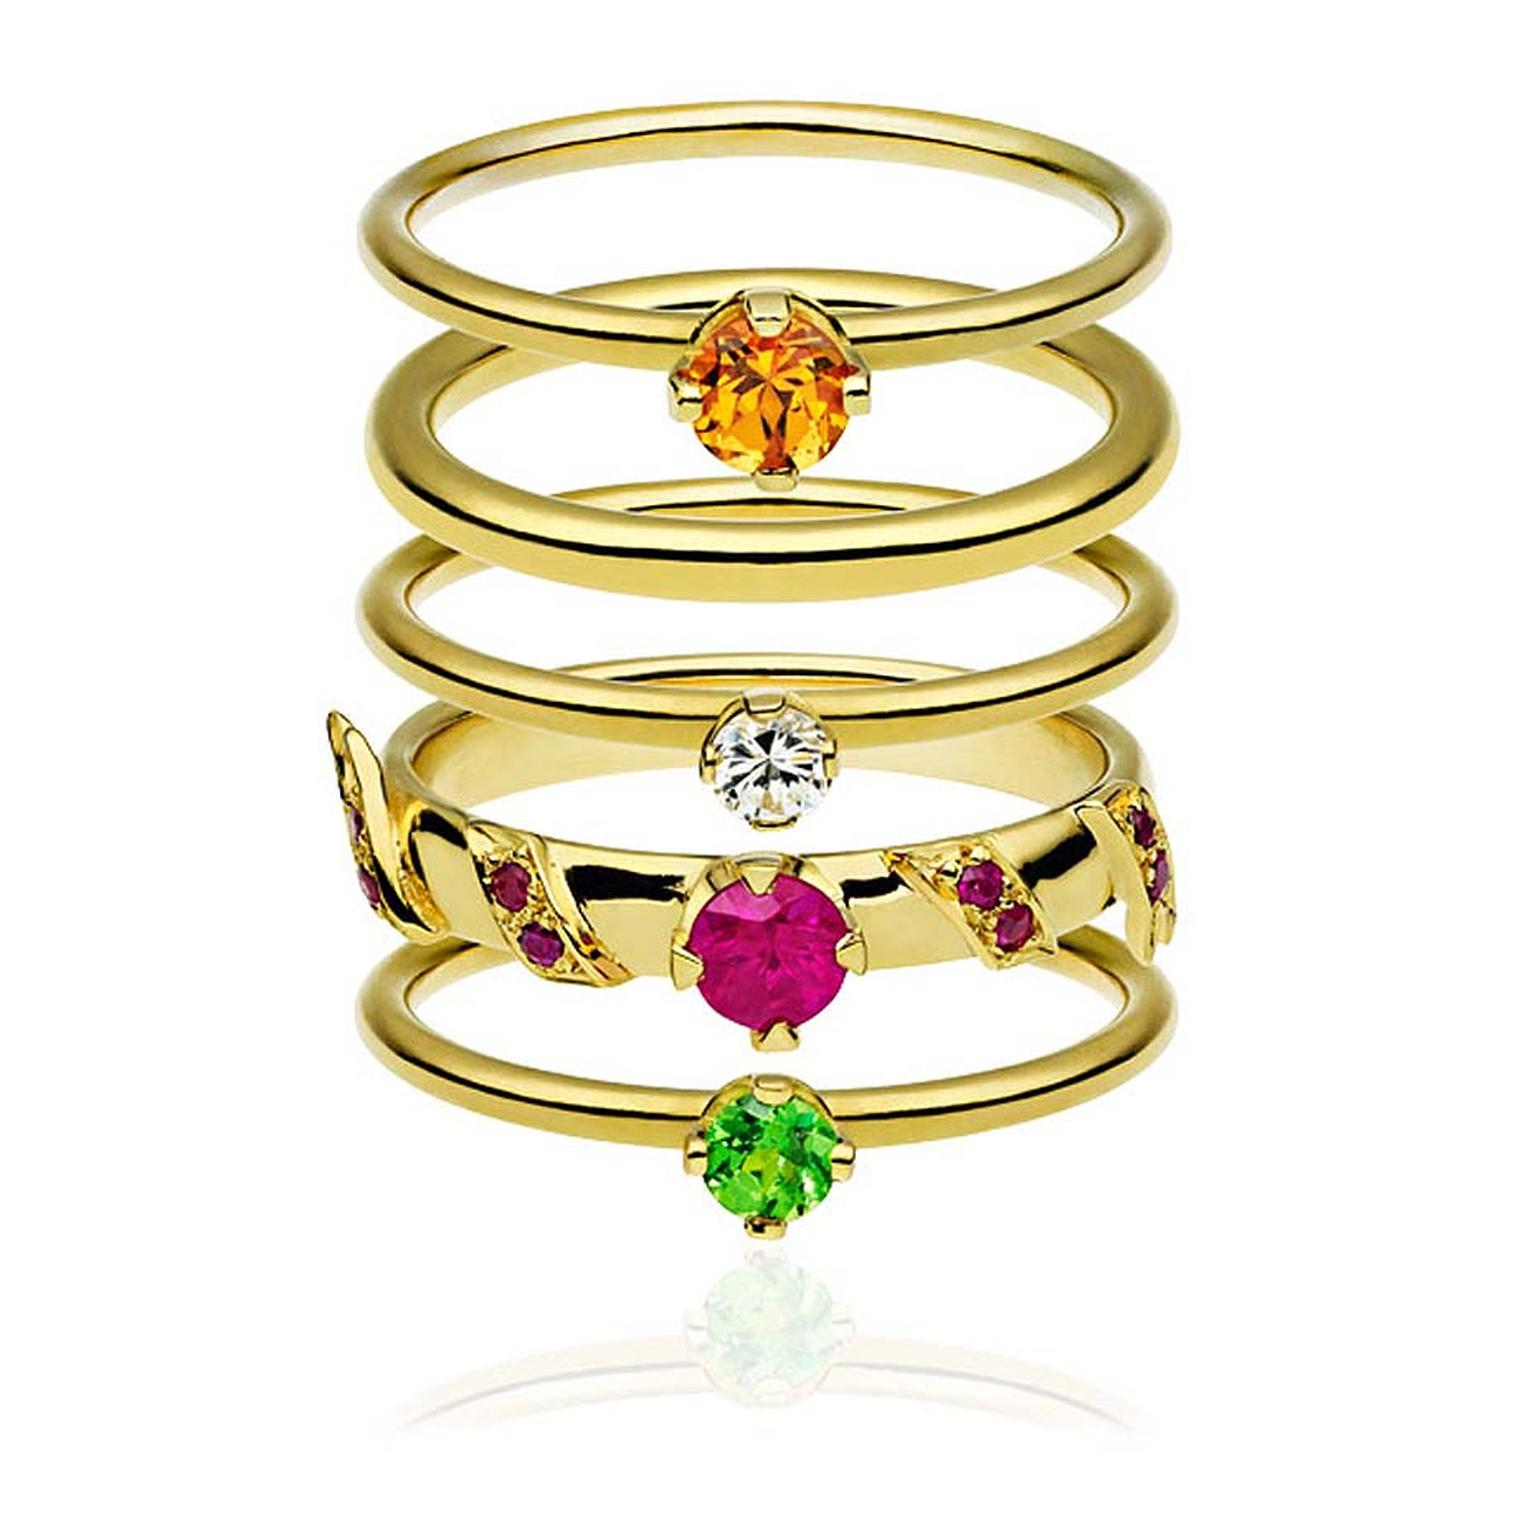 Ana de Costa Alchemy gemstone stacking rings in yellow gold featuring a round brilliant-cut mandarin garnet, a brilliant-cut diamond, brilliant-cut rubies and a brilliant-cut tsavorite,£2,950.